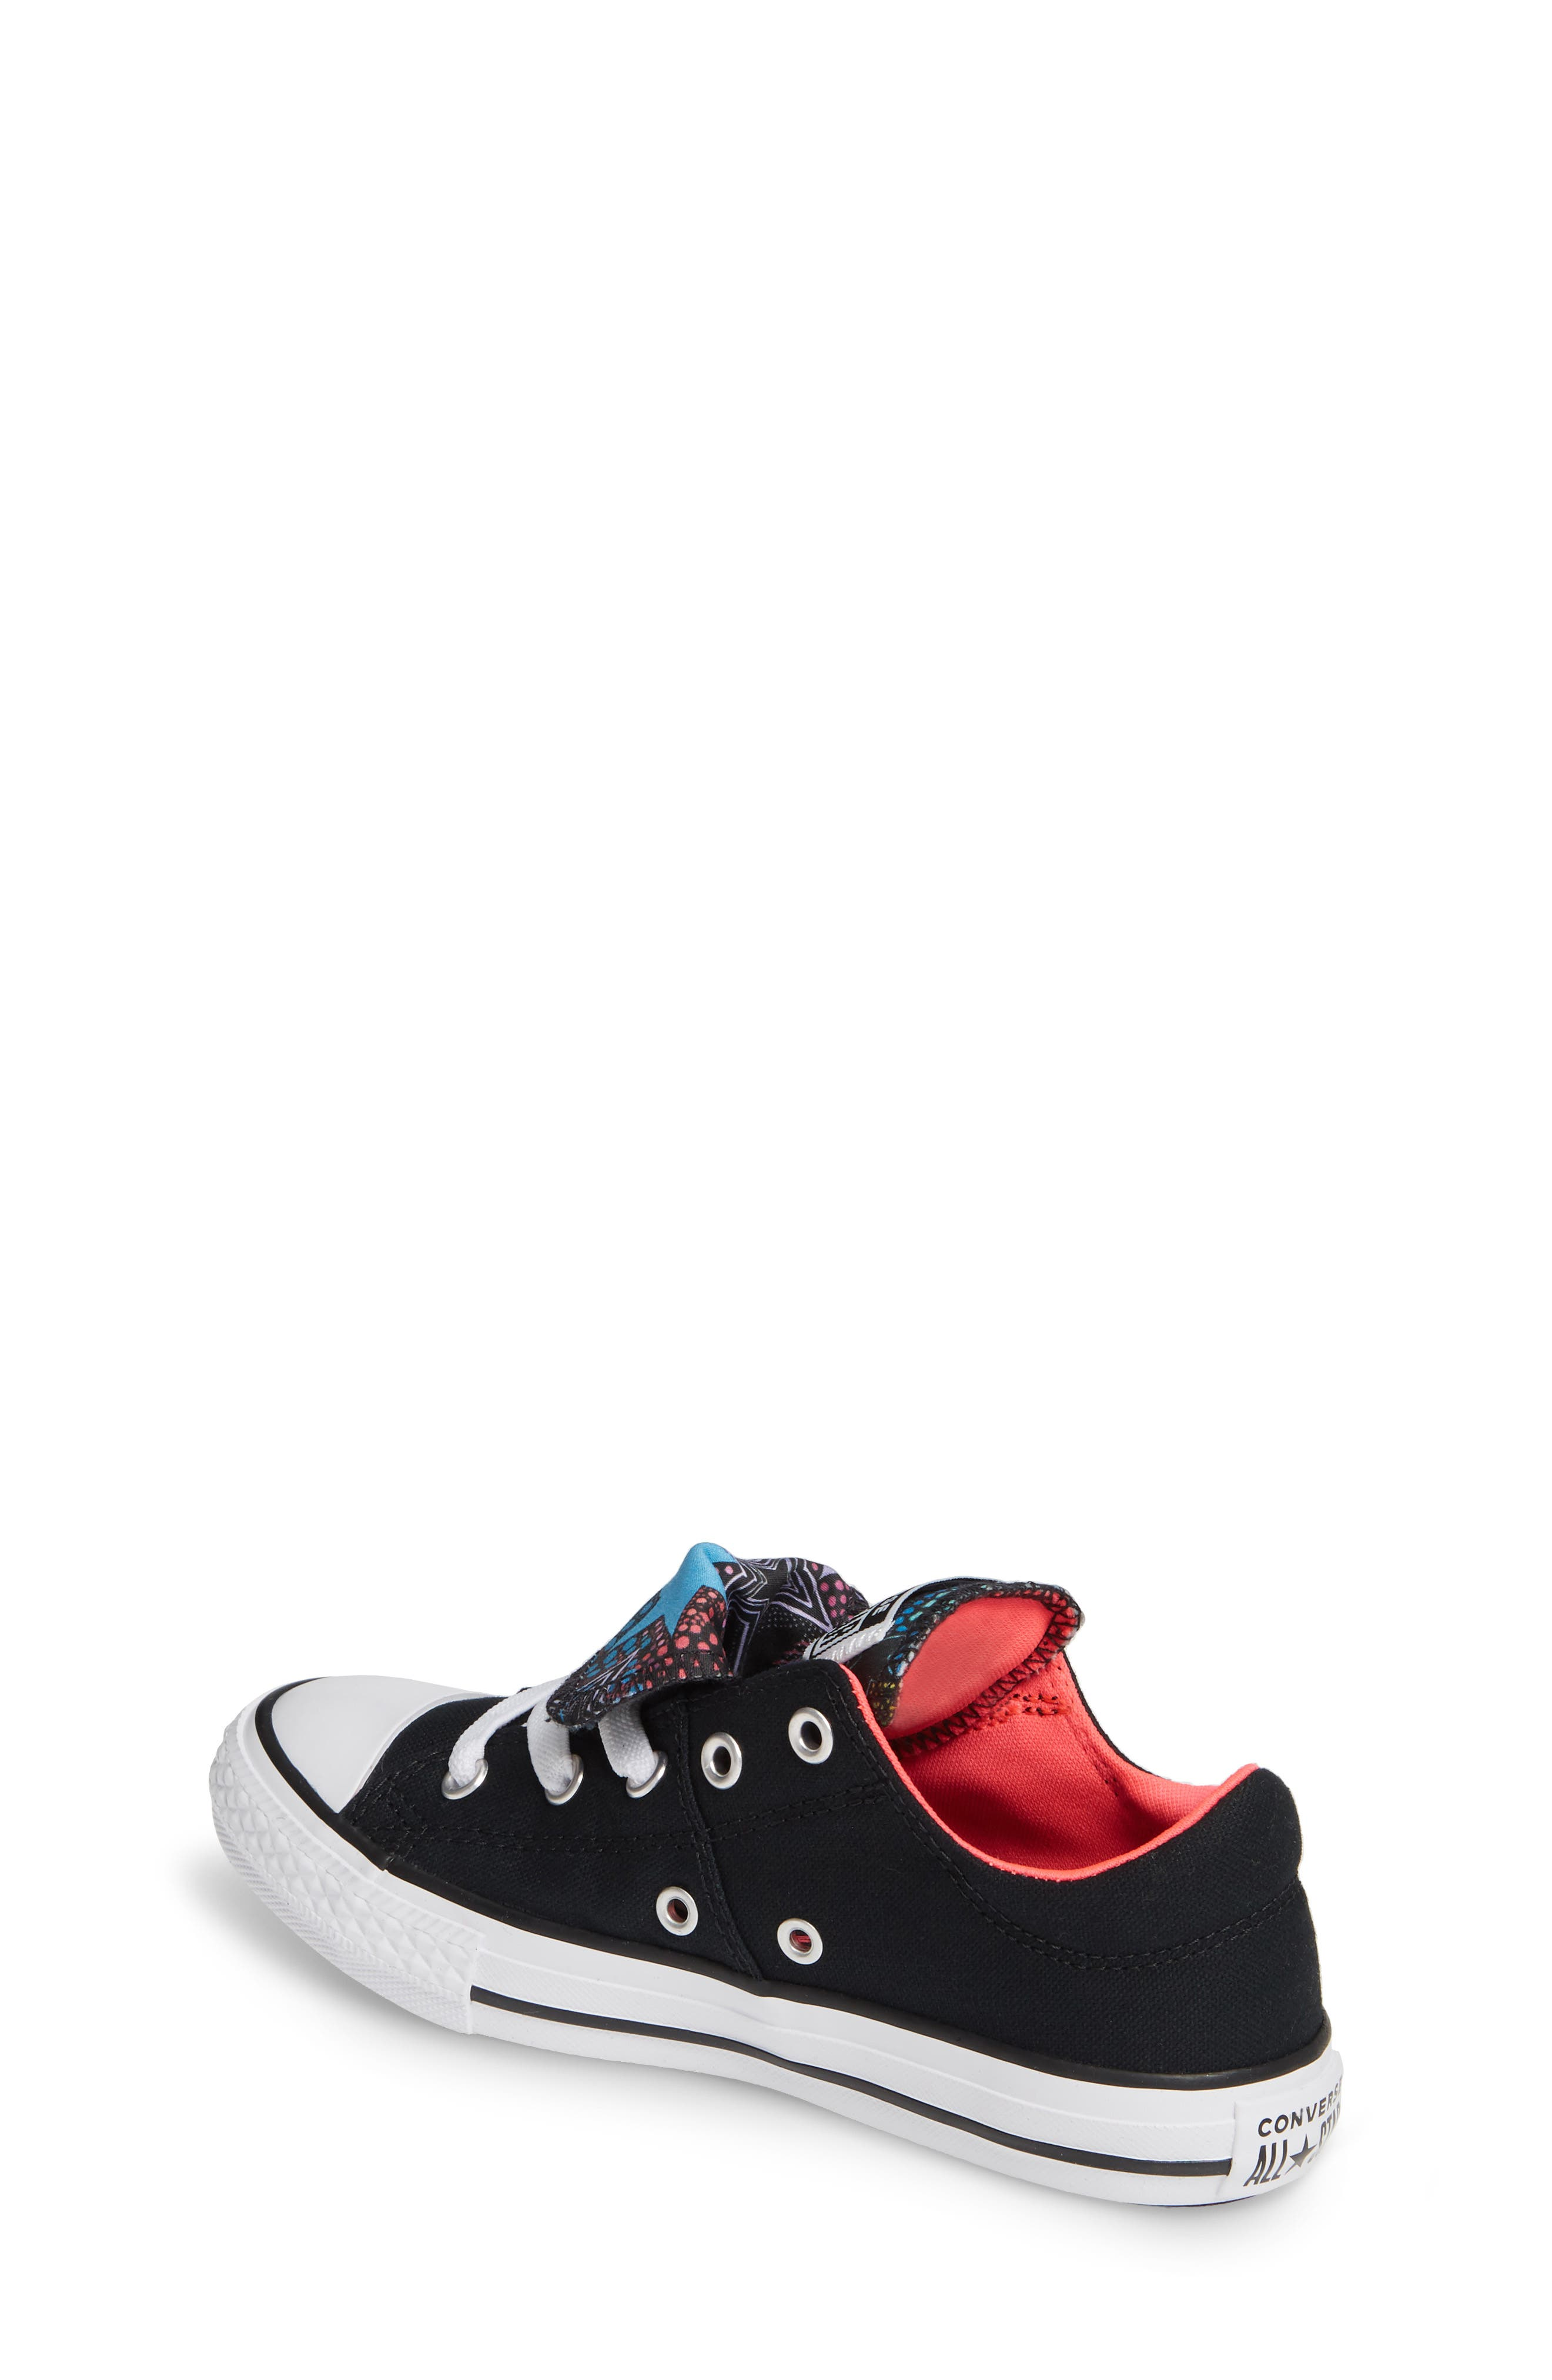 CONVERSE, Chuck Taylor<sup>®</sup> All Star<sup>®</sup> Maddie Double Tongue Sneaker, Alternate thumbnail 2, color, 001